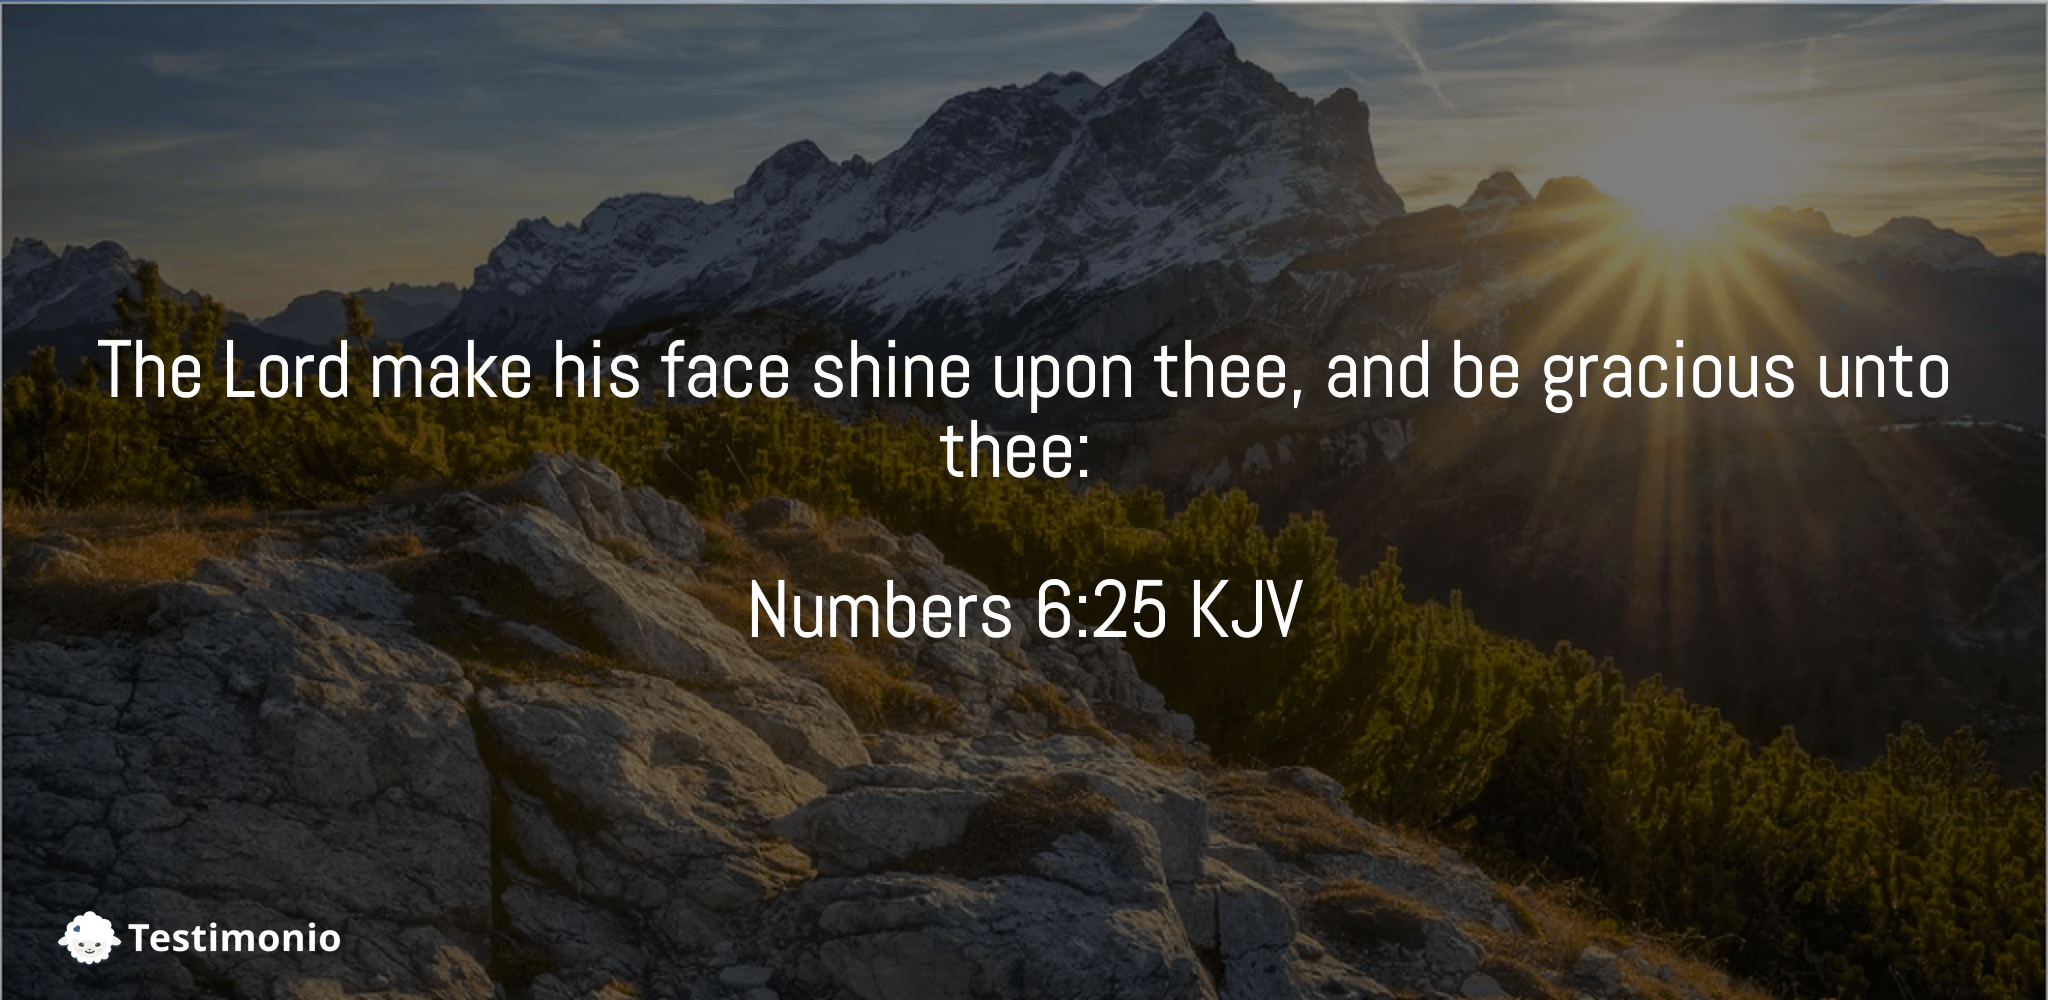 Numbers 6:25